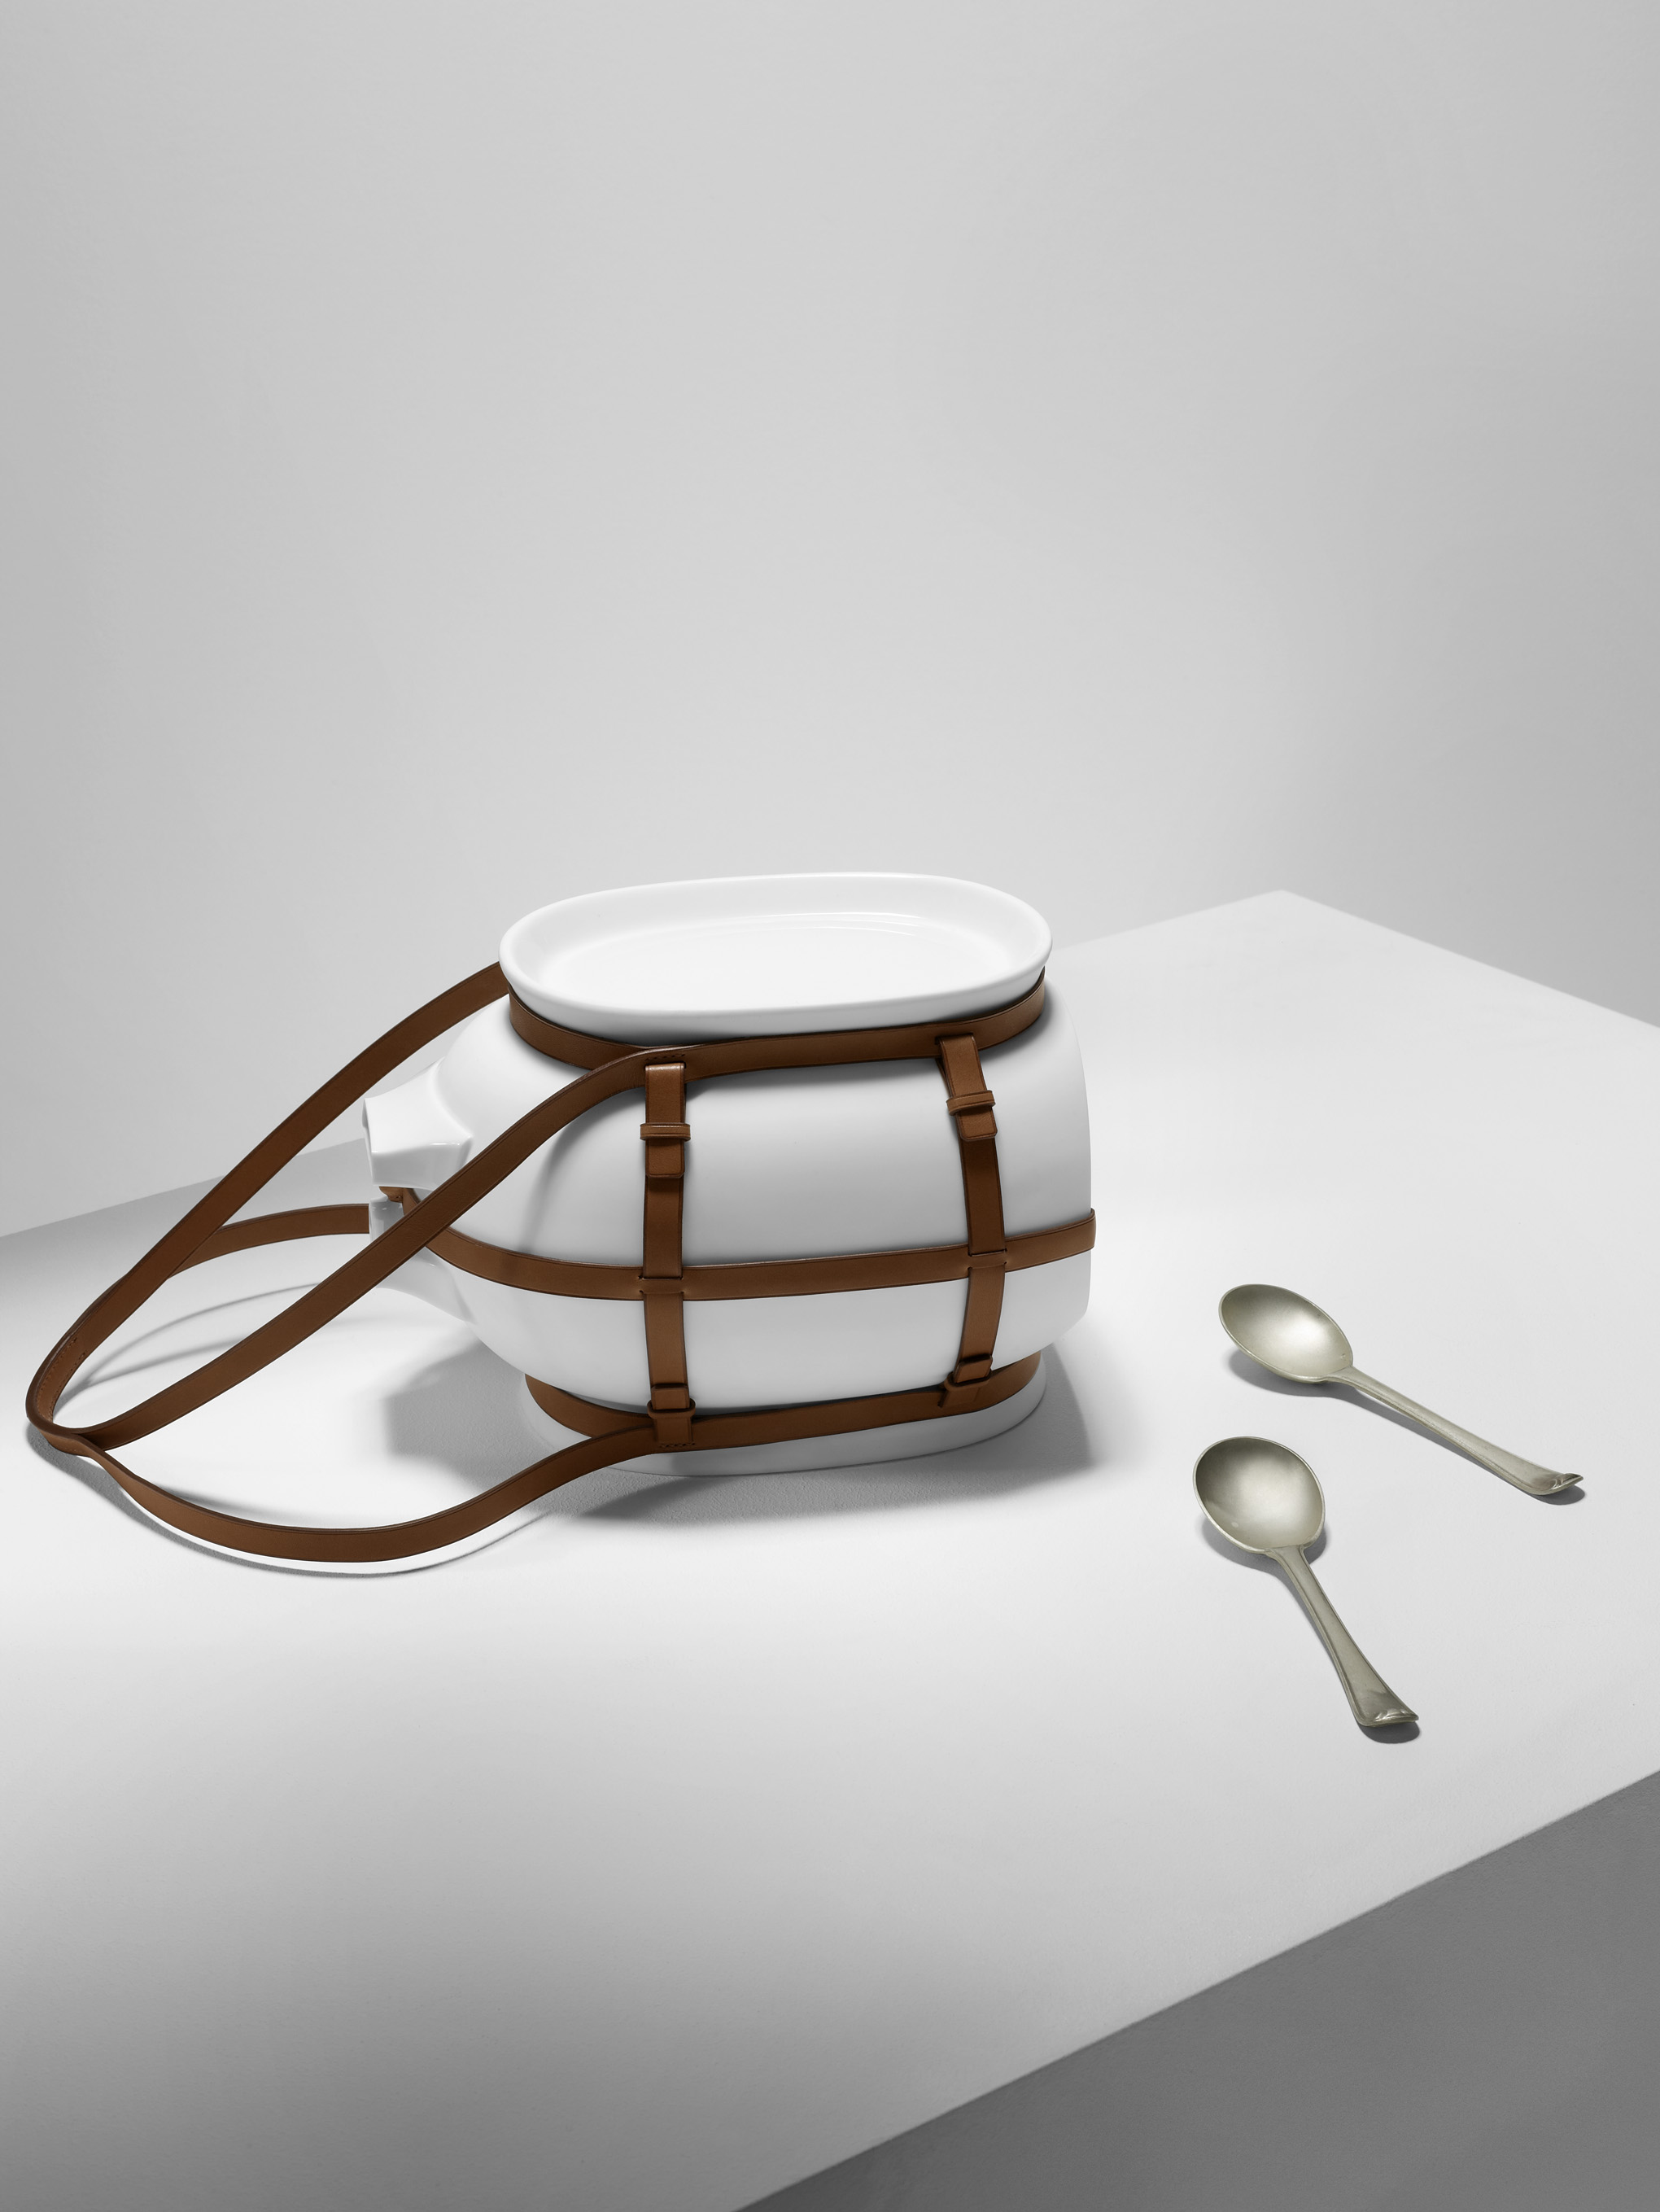 A Petit h project dreamed up by an Hermès craftsman.